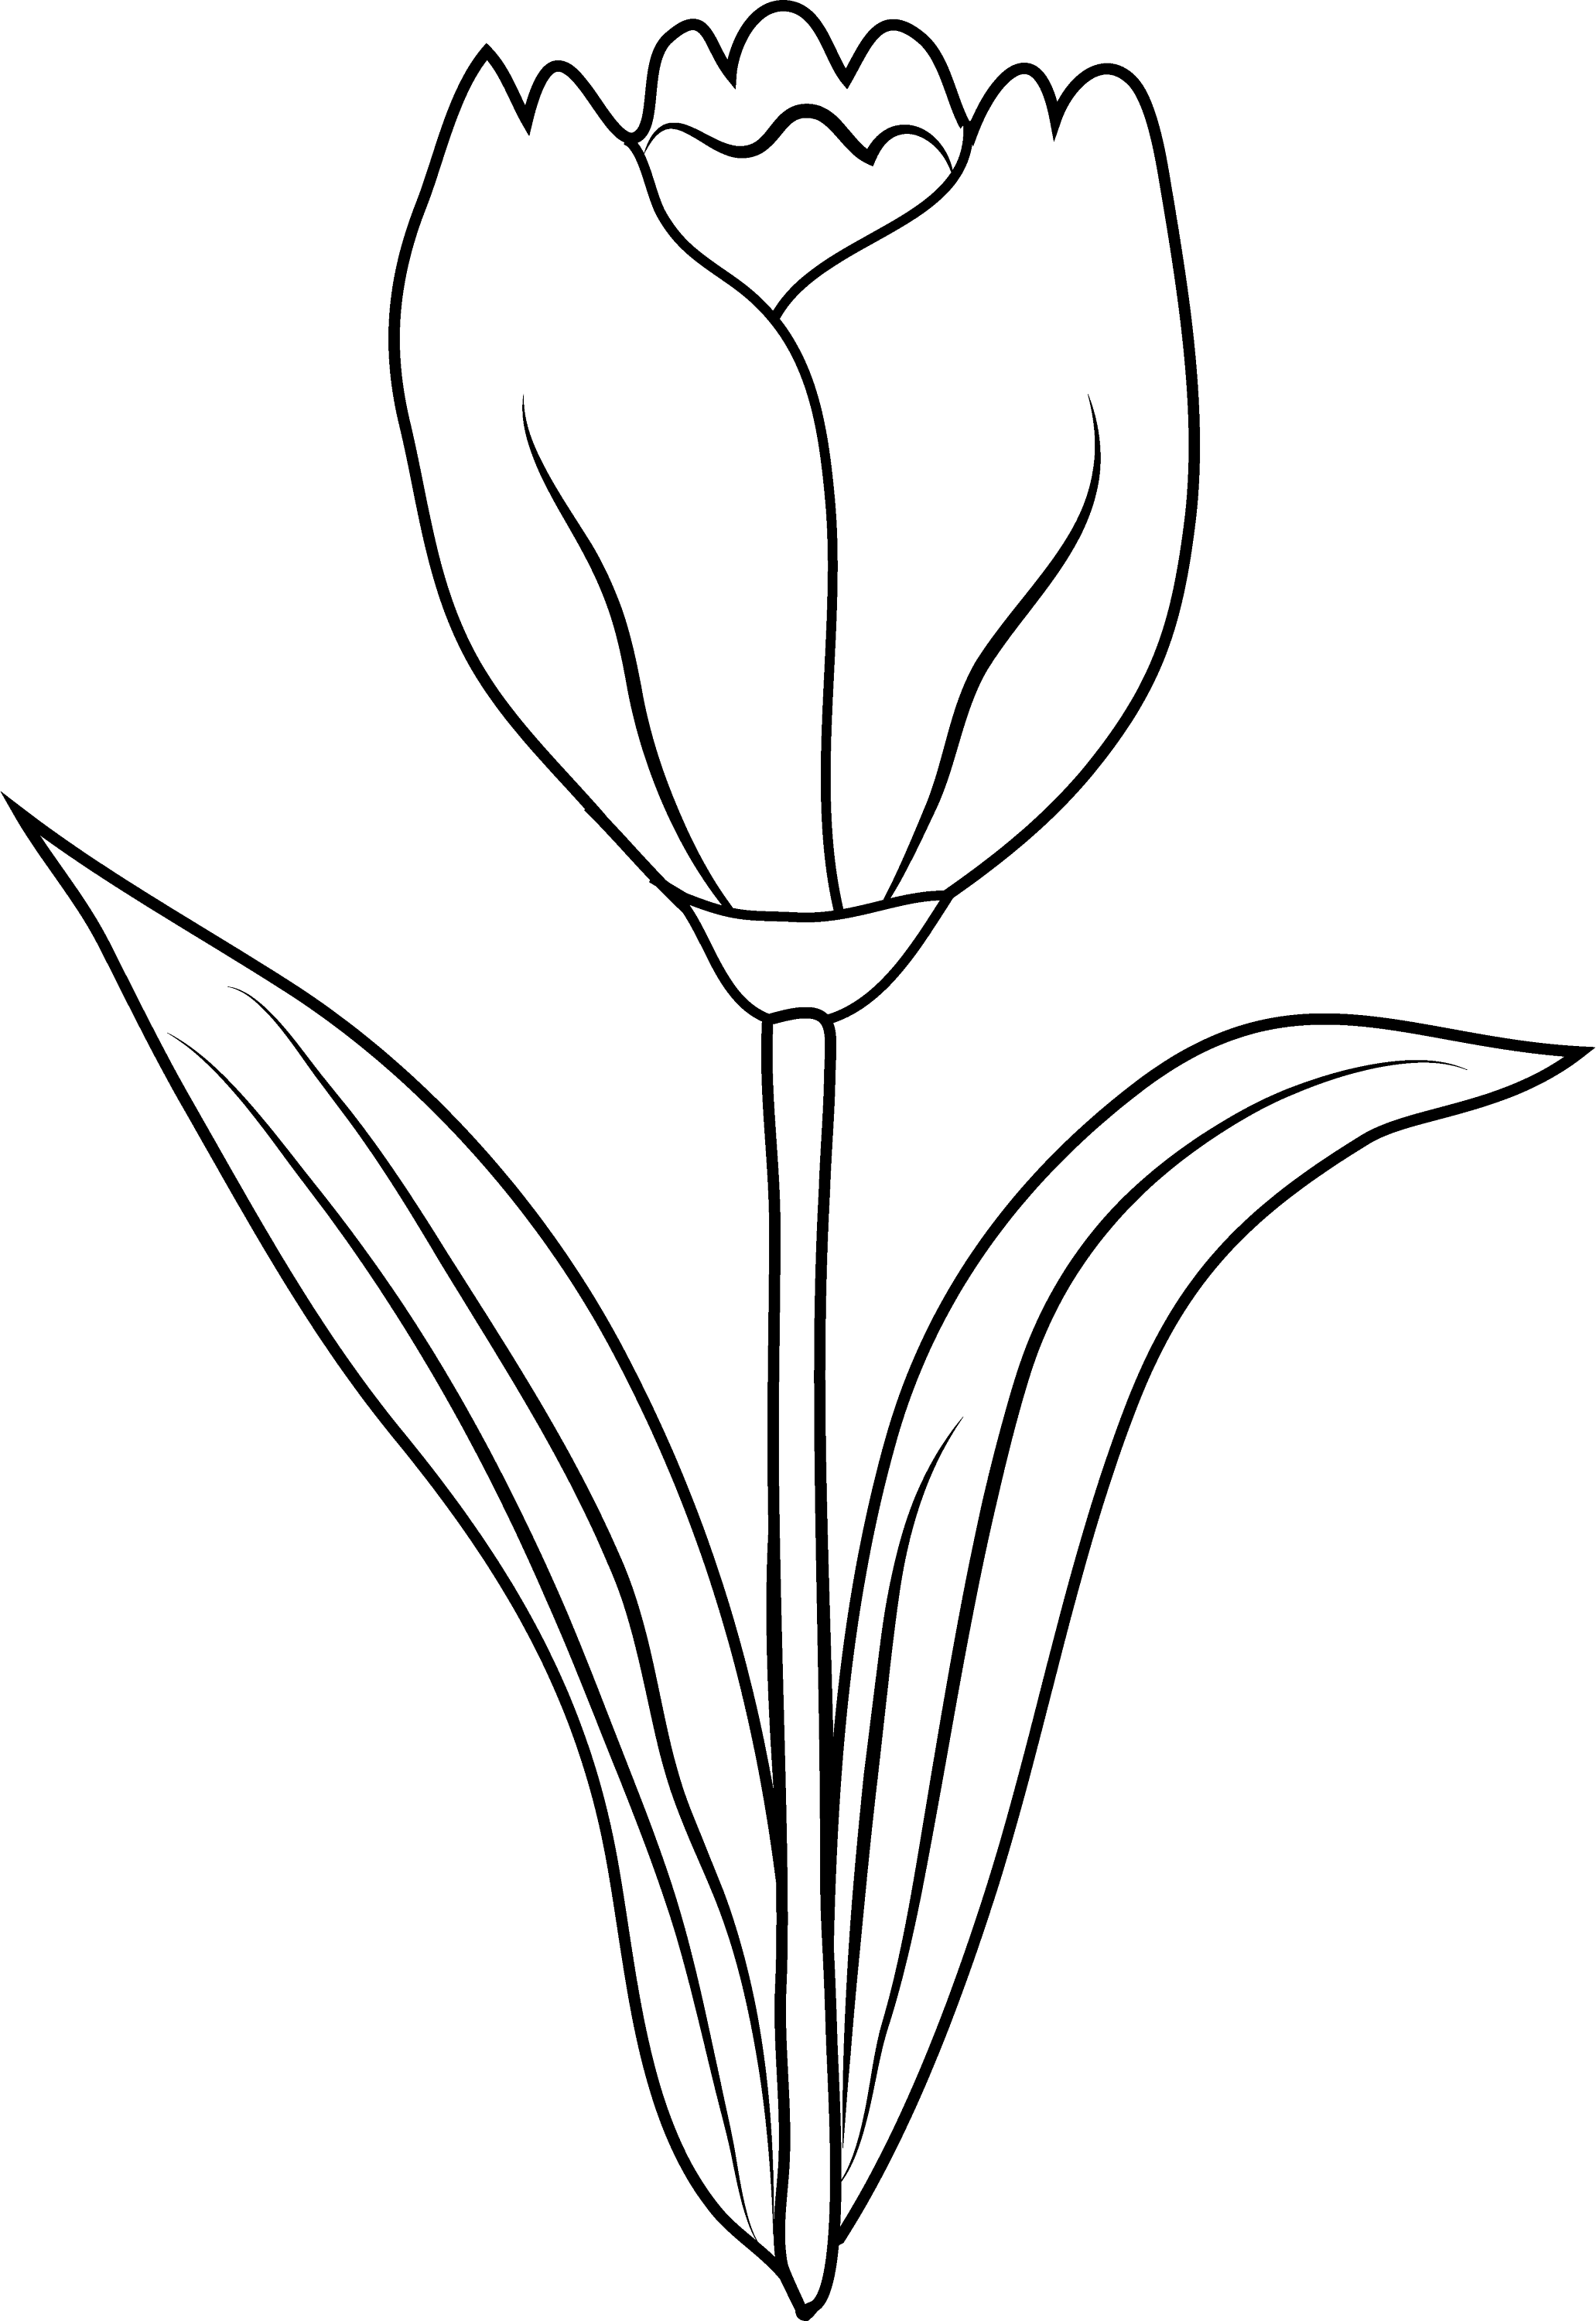 coloring flower png daisy flower coloring page free clip art flower png coloring